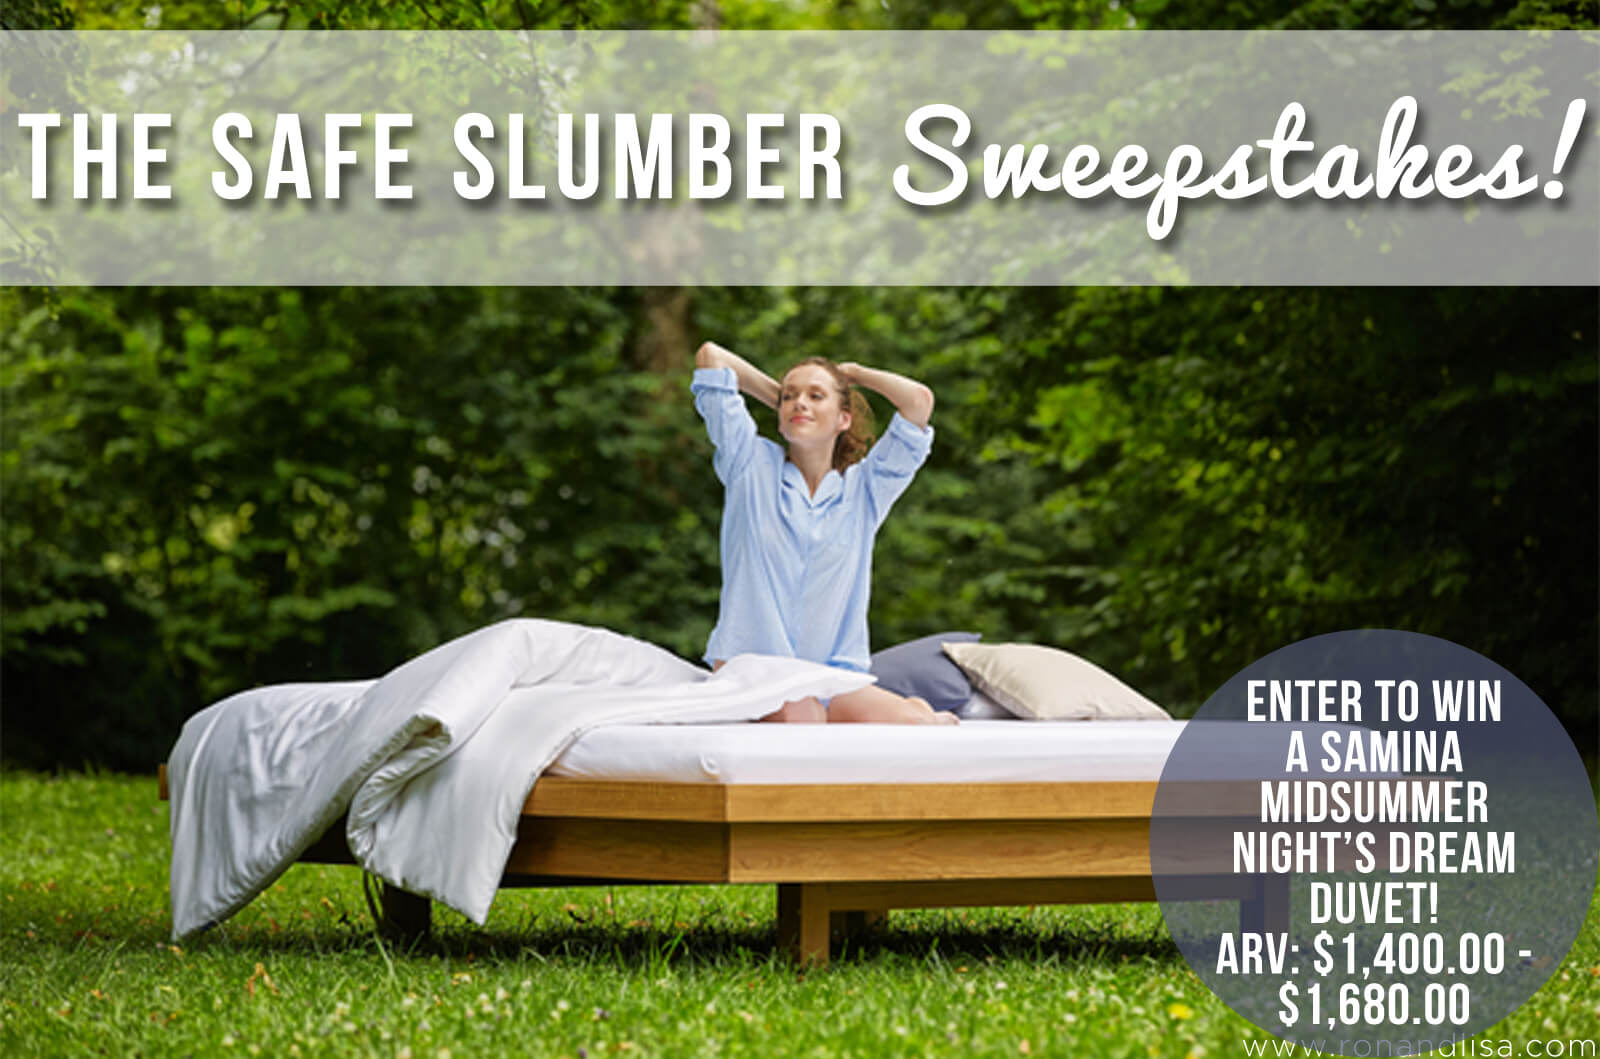 The Safe Slumber Sweepstakes!